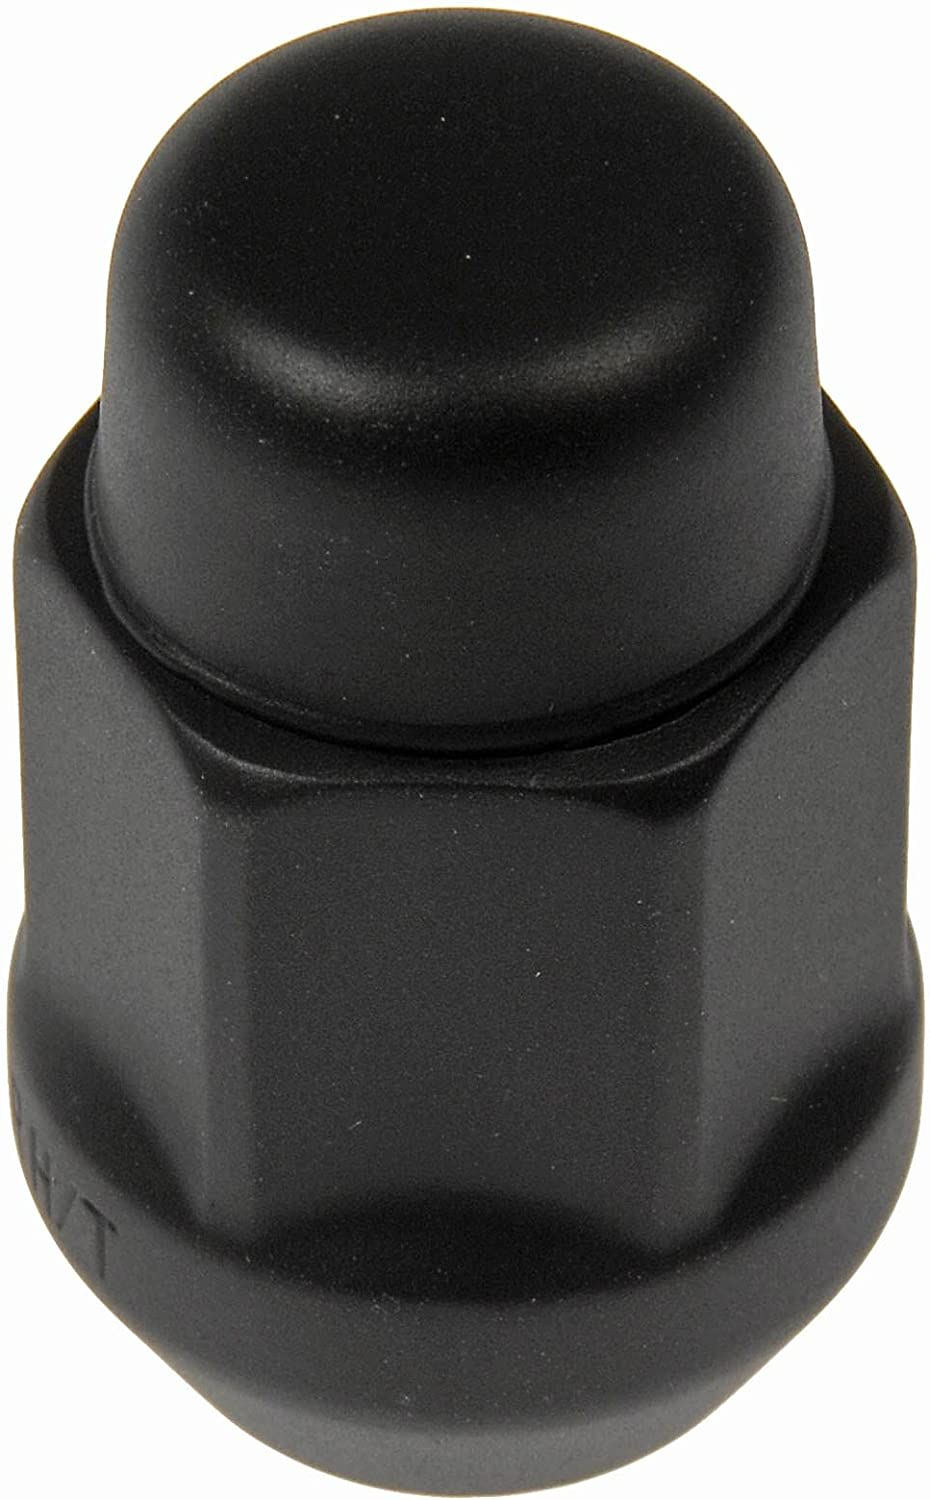 Dorman 711-335C Pack of 16 Matte Black Wheel Nuts and 4 Lock Nuts with Key